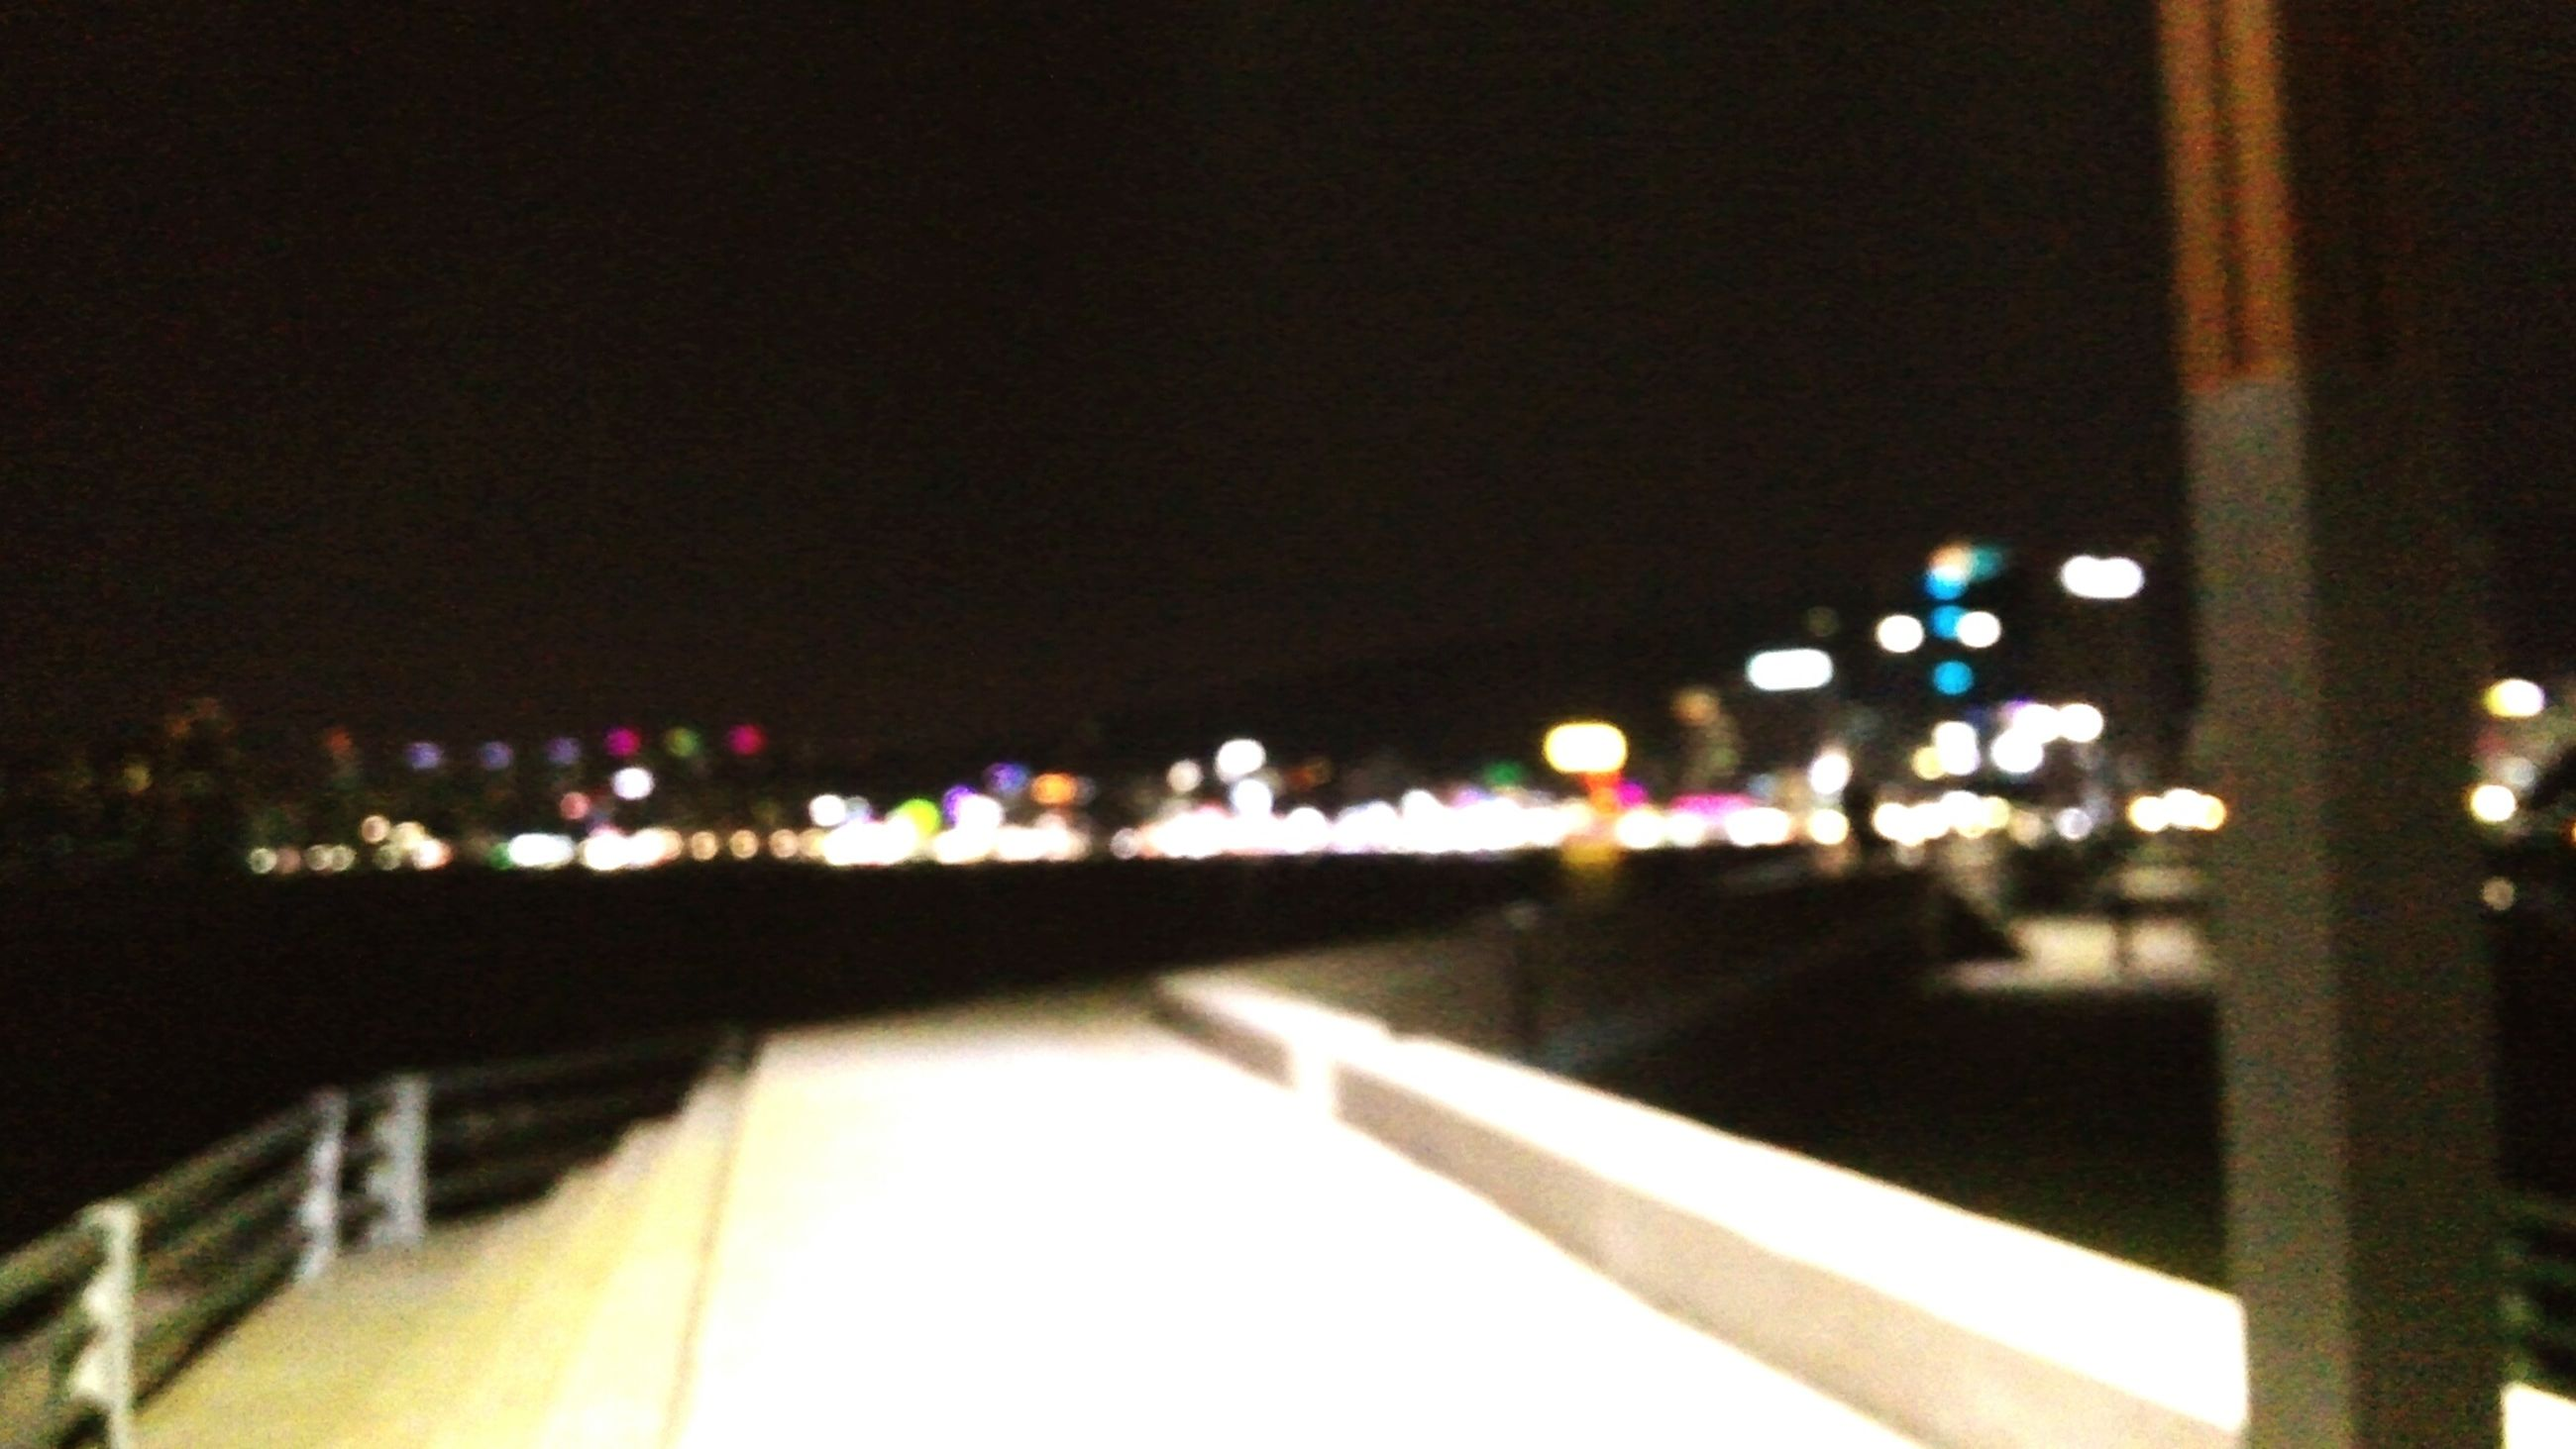 illuminated, night, lighting equipment, architecture, built structure, city, street light, railing, building exterior, light - natural phenomenon, copy space, clear sky, no people, dark, defocused, electric light, outdoors, light, focus on foreground